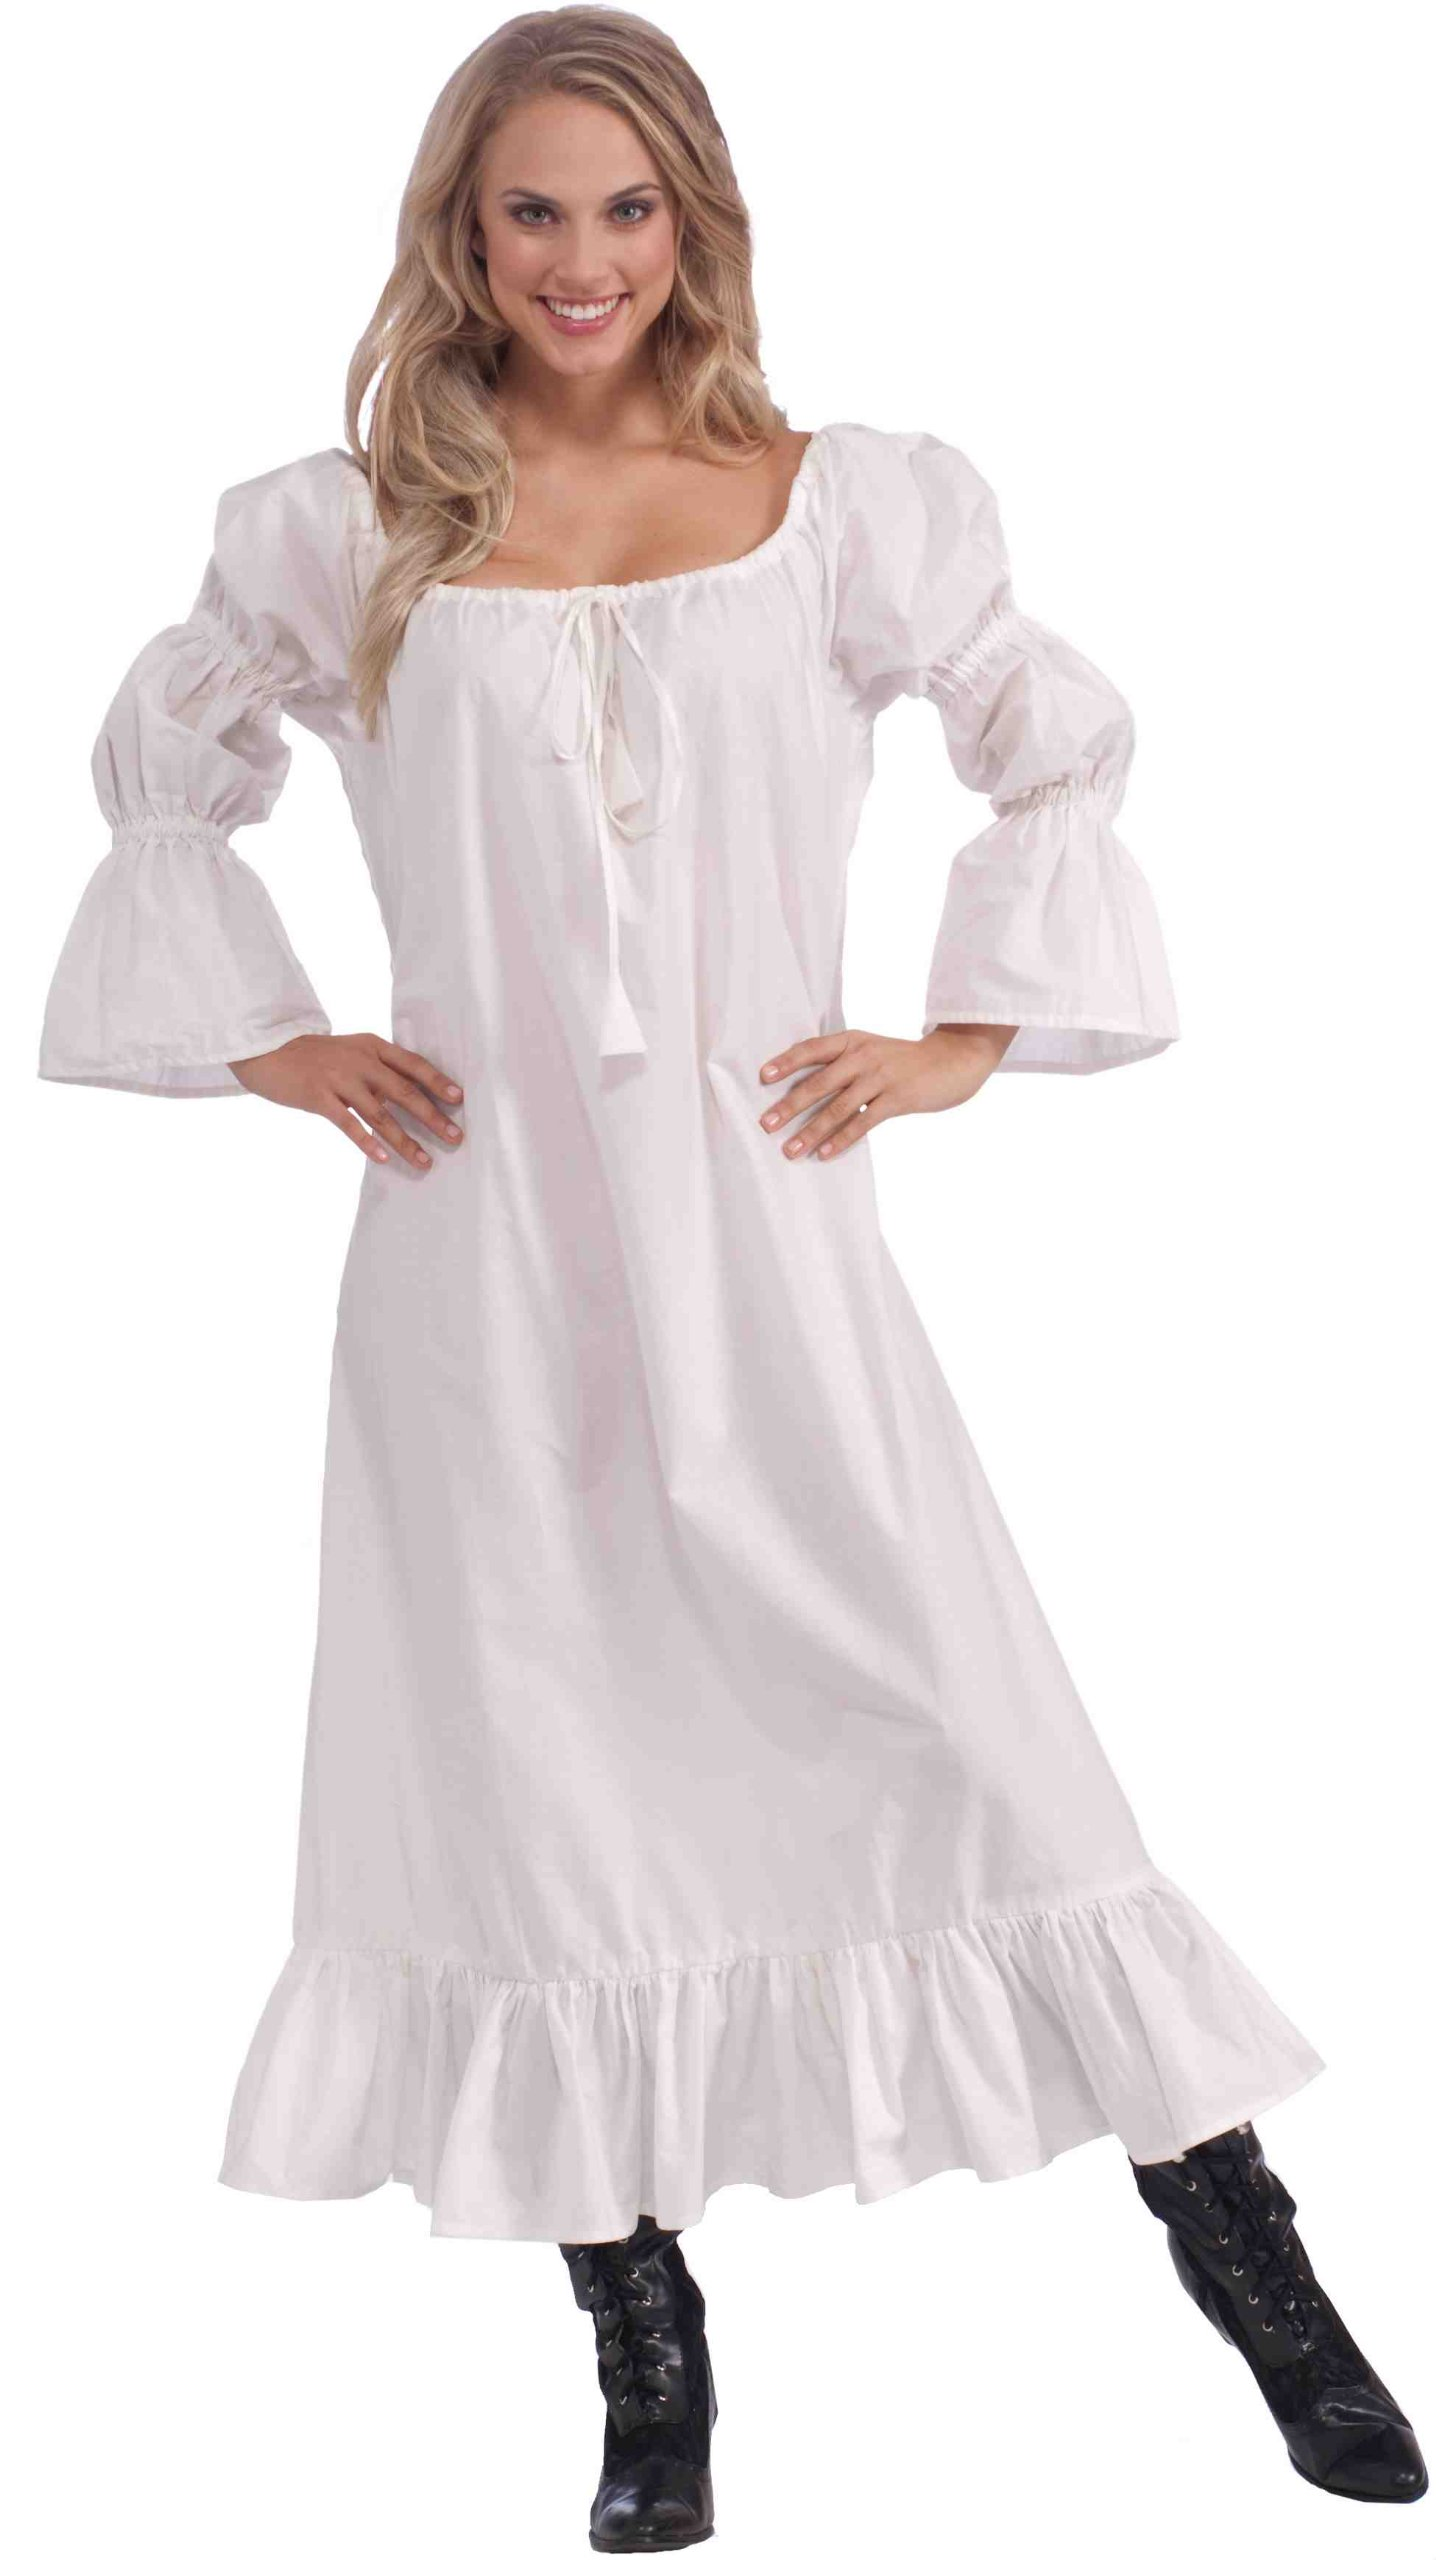 Forum Novelties Women's Medieval Chemise Costume Accessory